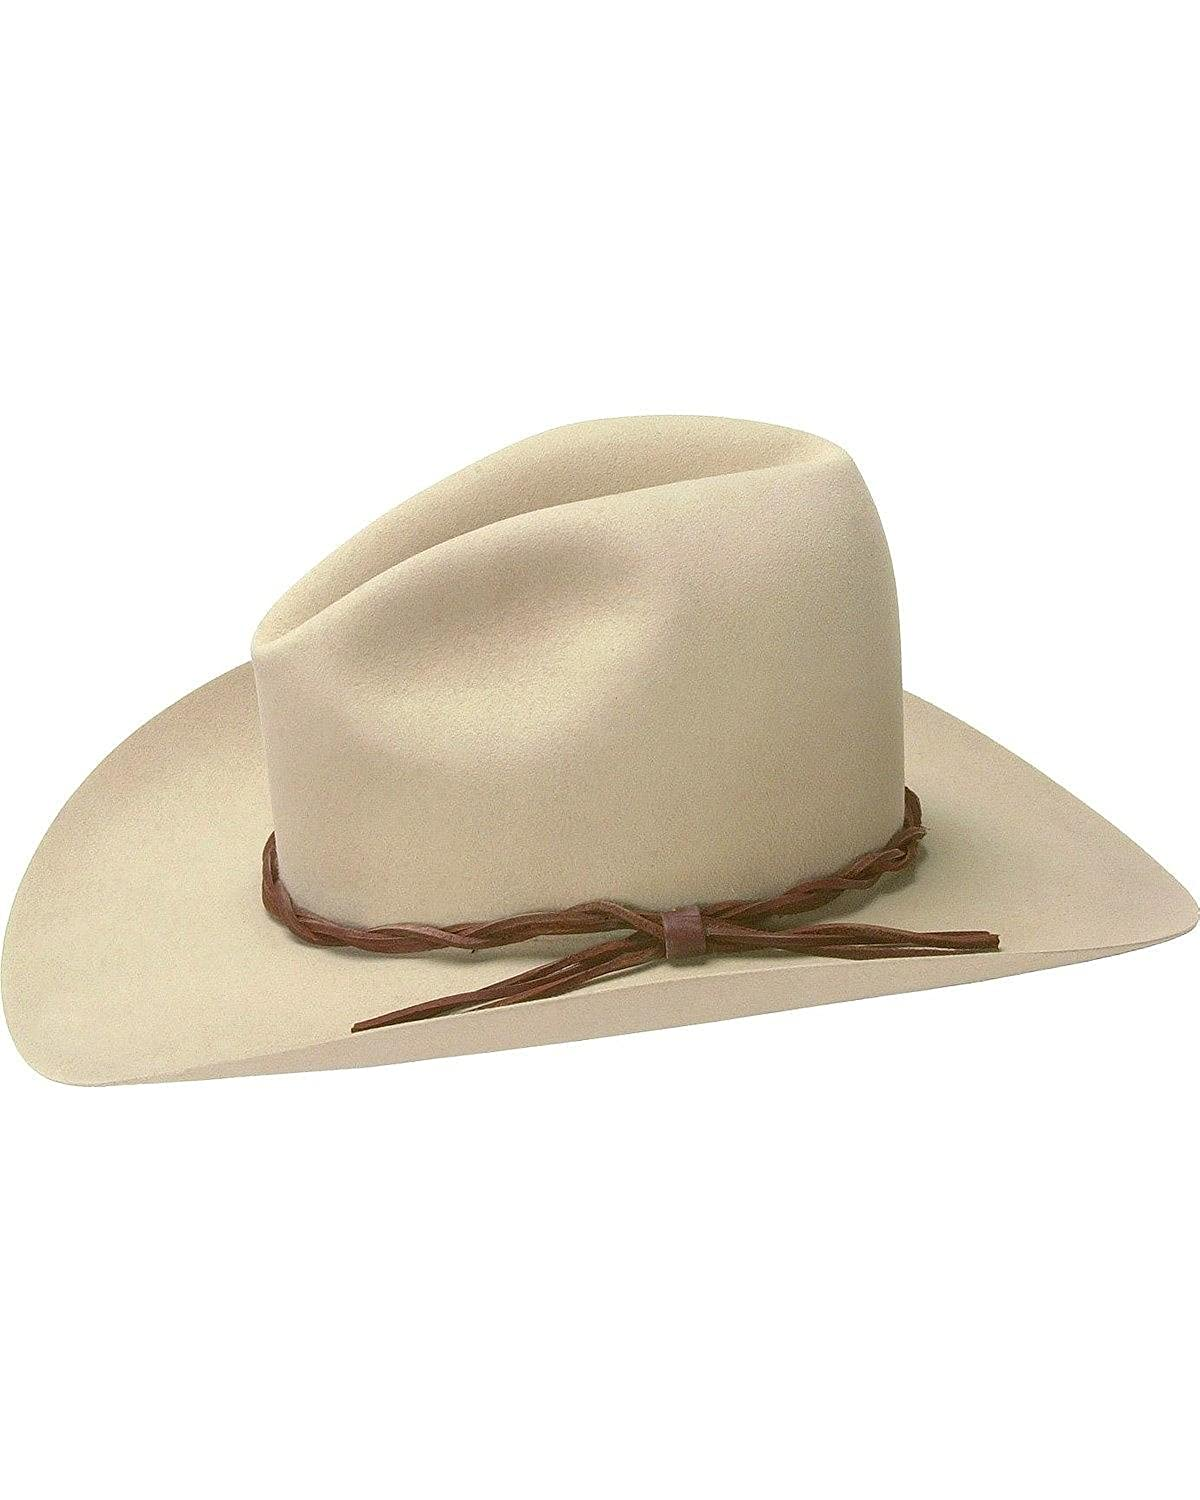 54f1577f03930 Stetson Men s 6X Gus Fur Felt Cowboy Hat Silverbelly 7 5 8 at Amazon Men s  Clothing store